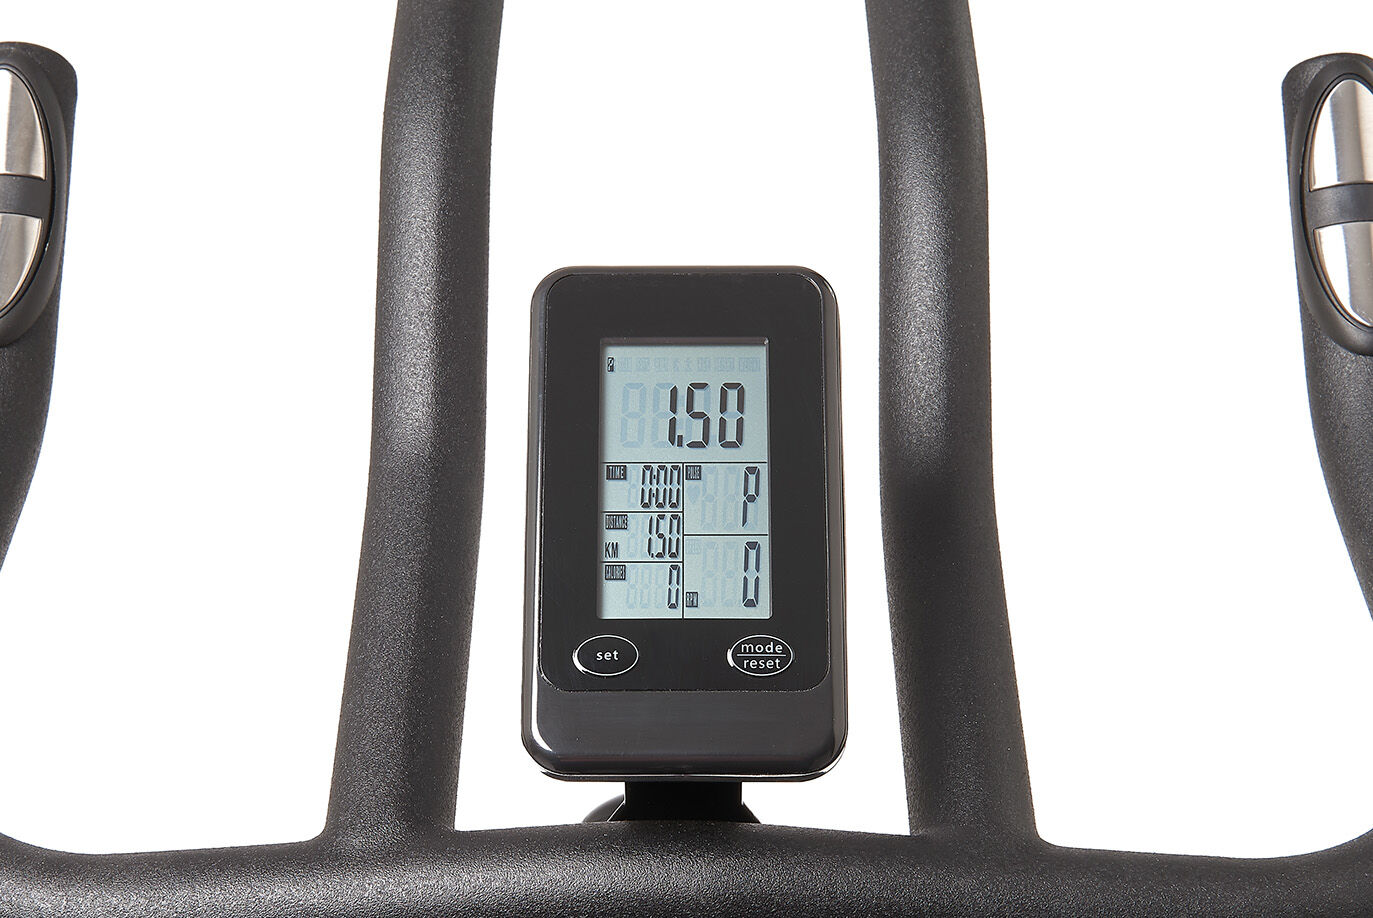 Used Indoor Bike Computer | Accurately Track Your Performance